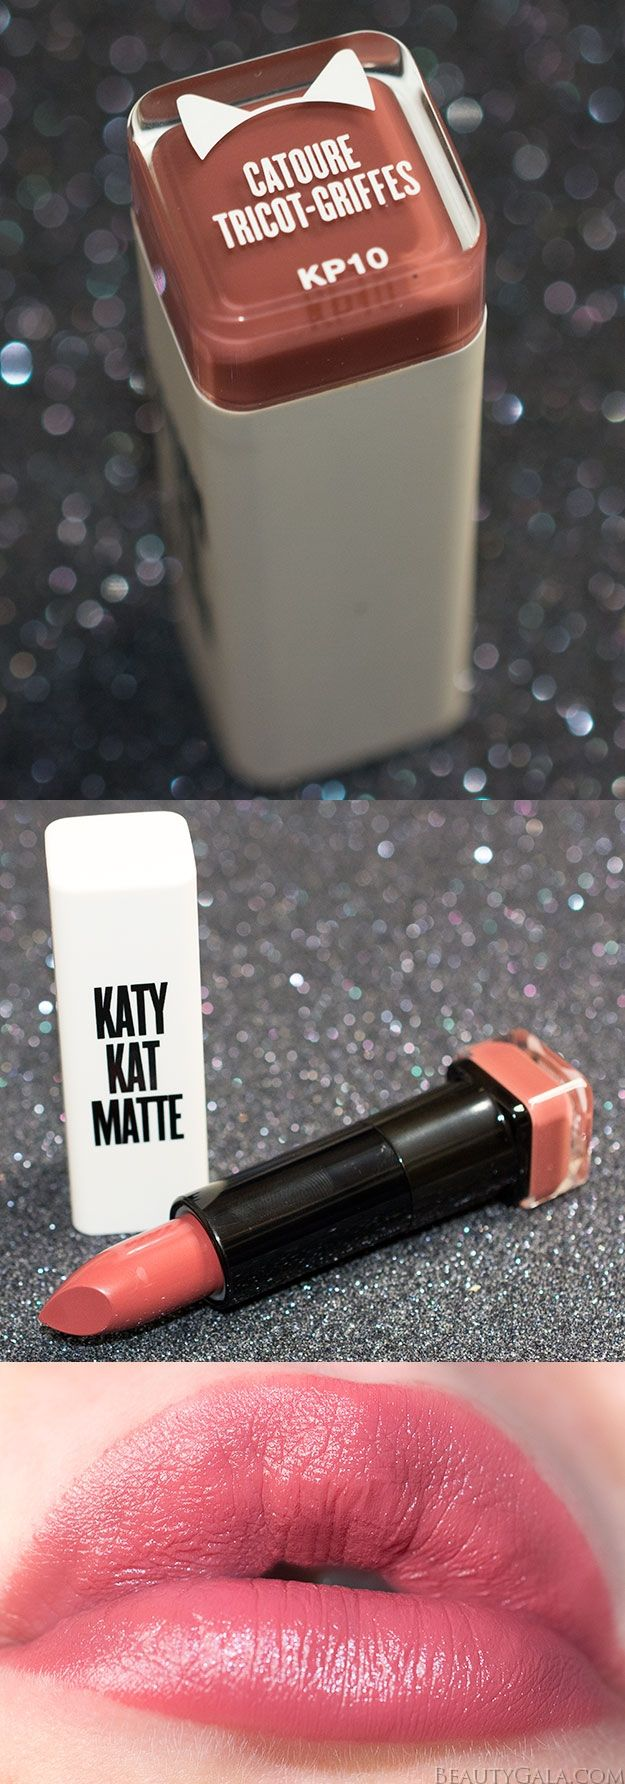 Covergirl Katy Kat Matte Lipstick Swatches & Review